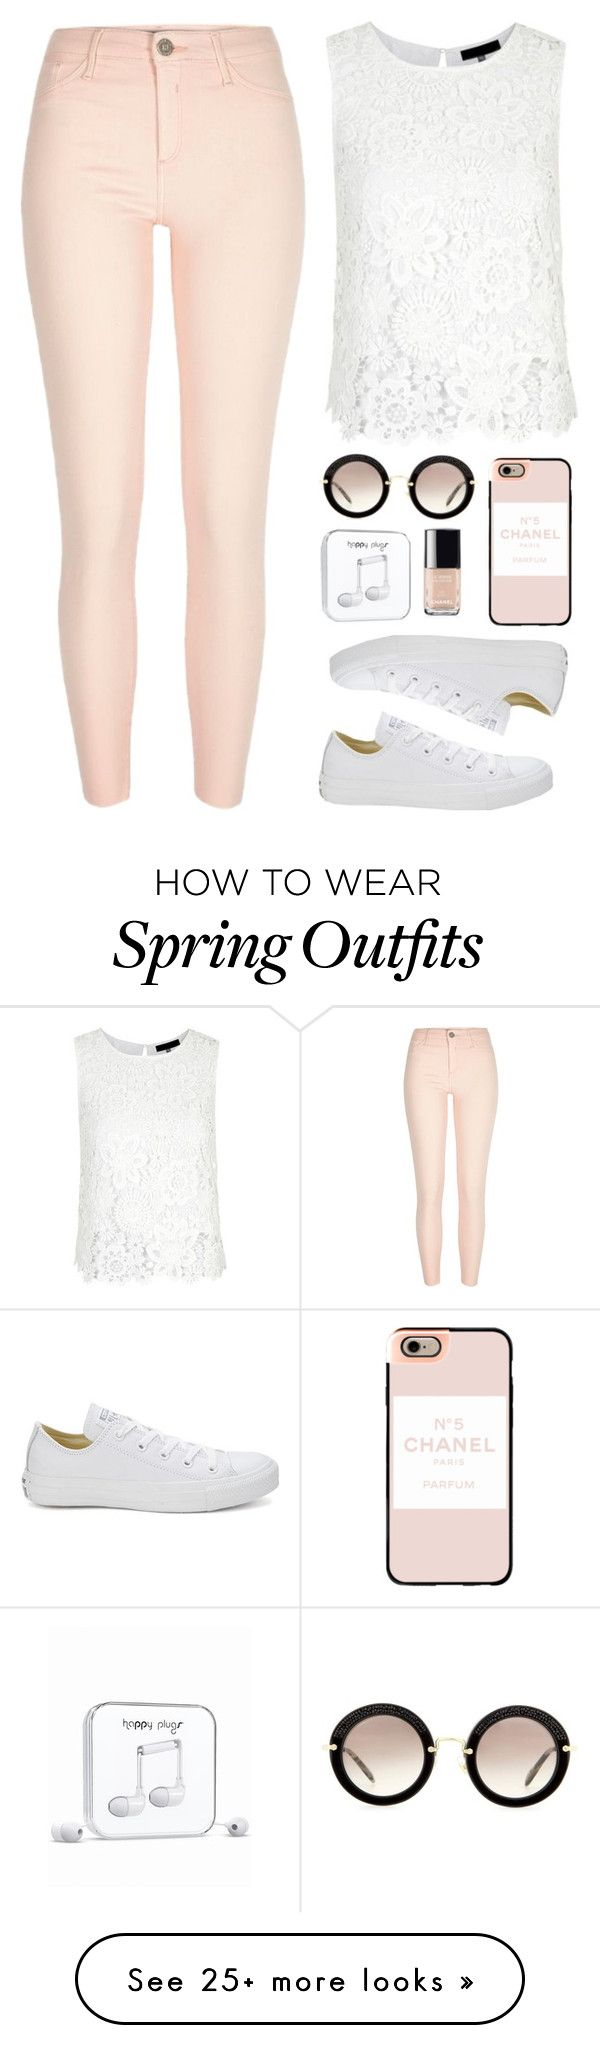 """Spring Outfit"" by aurorabc on Polyvore featuring River Island, Converse, Happy Plugs, Chanel, Miu Miu, Casetify, women's clothing, women, female and woman"